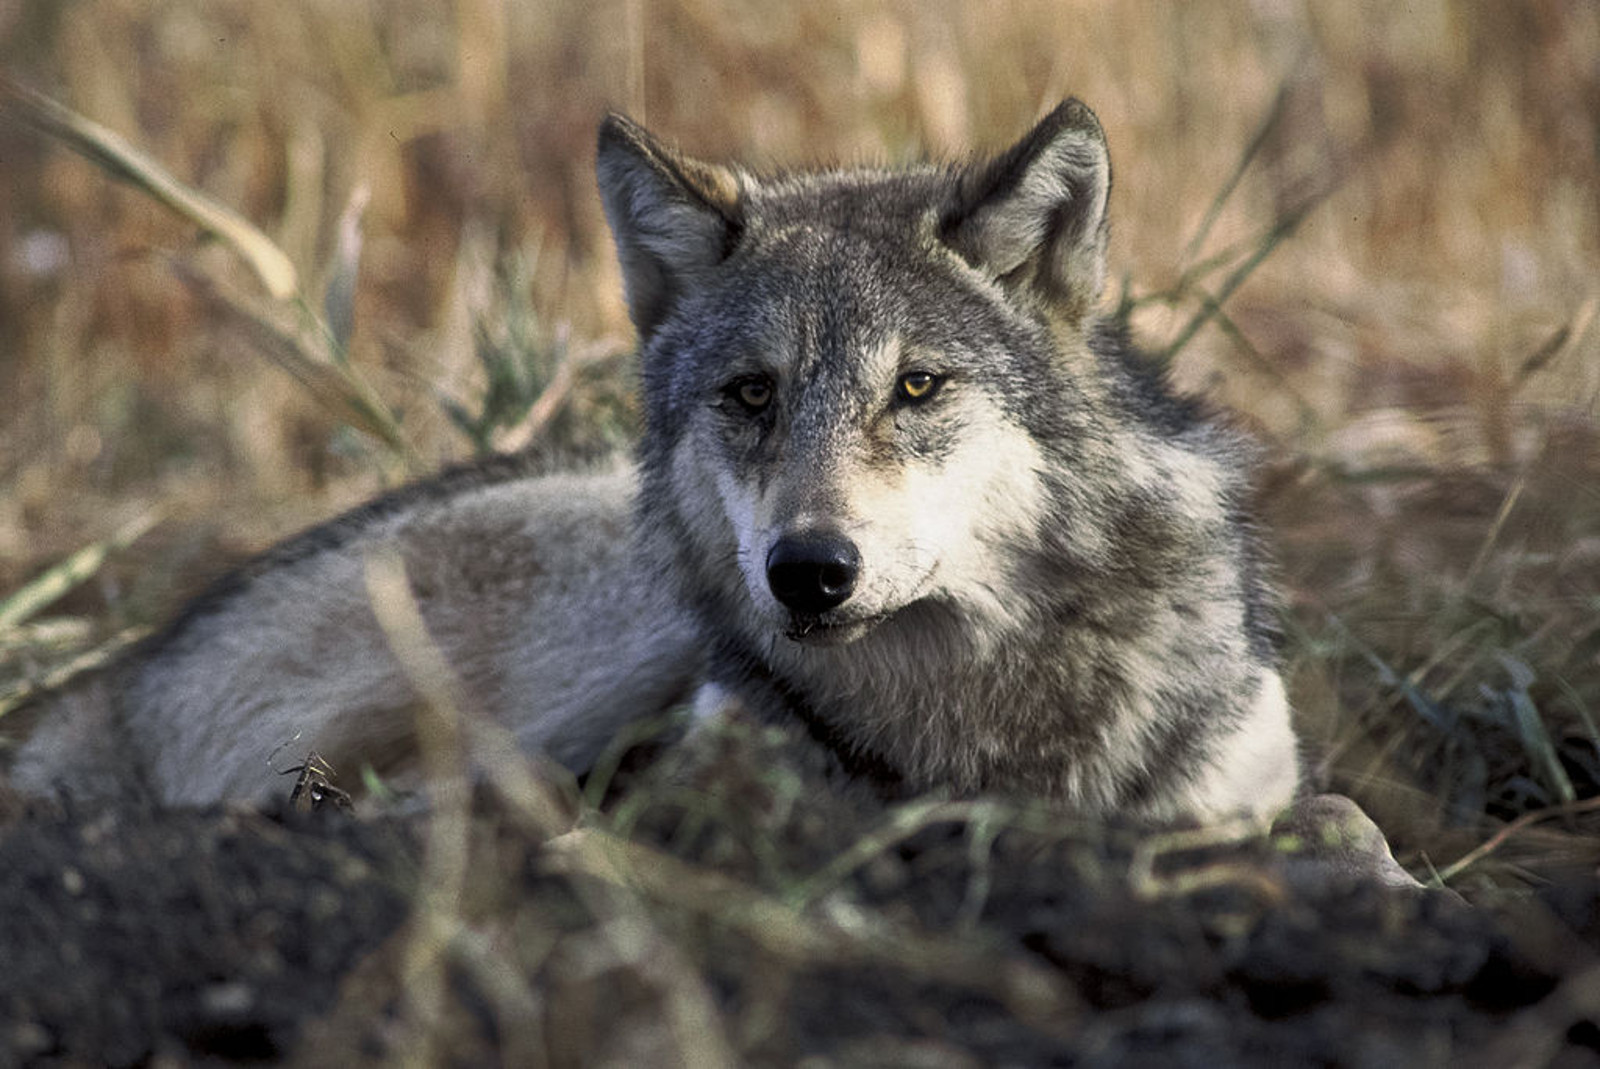 7 Sanctuaries Working to Save Abused and Neglected Wolves and Wolf-Hybrids